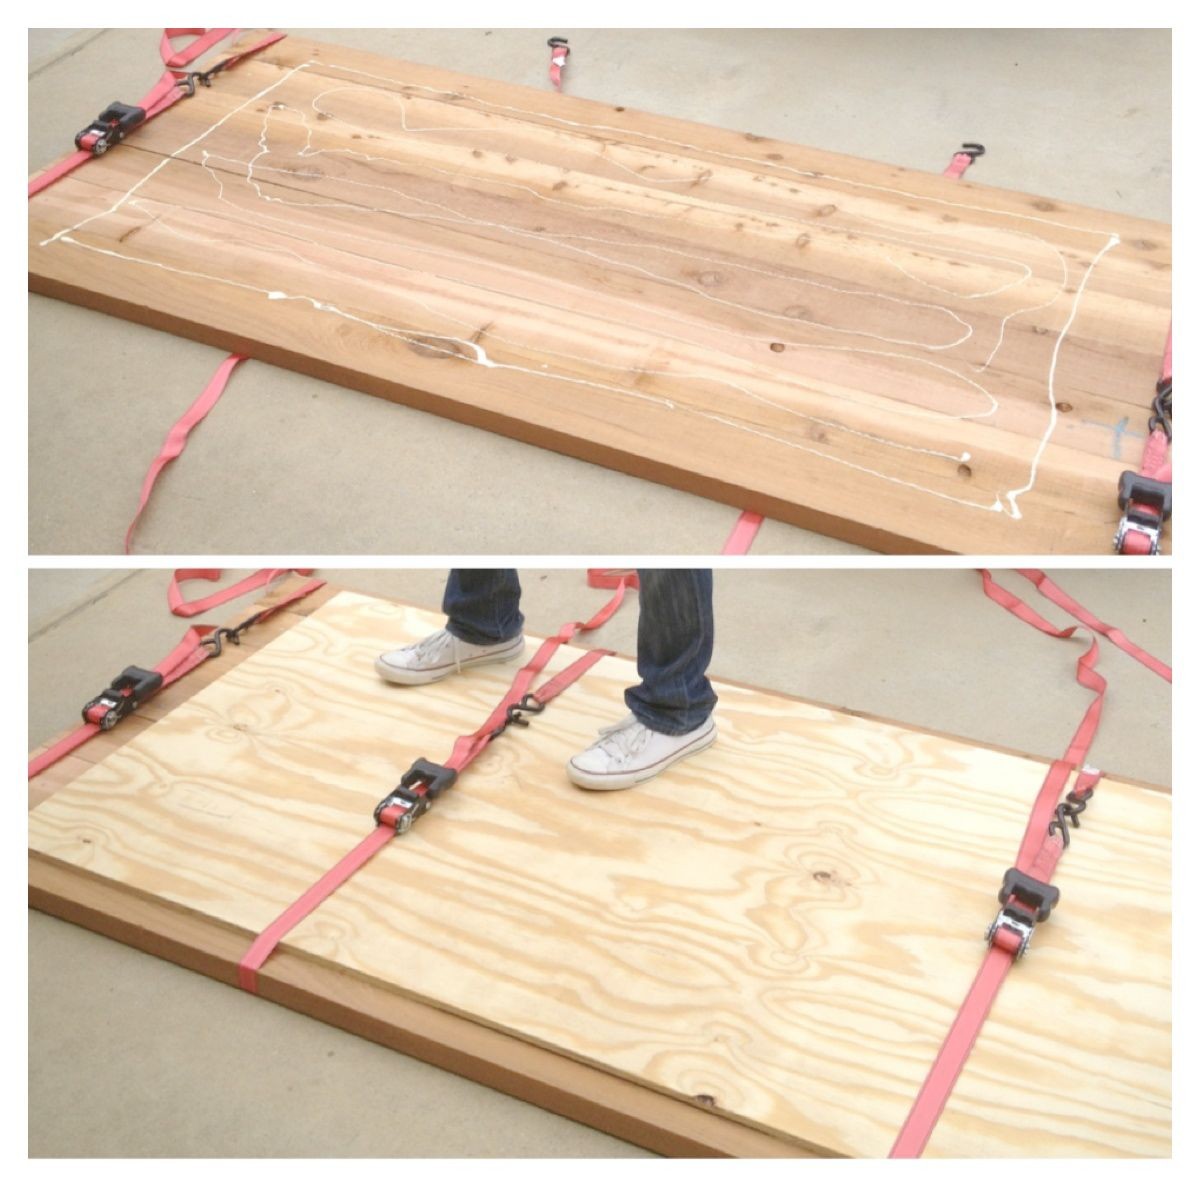 Dining Room Table Top With Liquid Nails To Attach Plywood First, Then Drill  Screws In